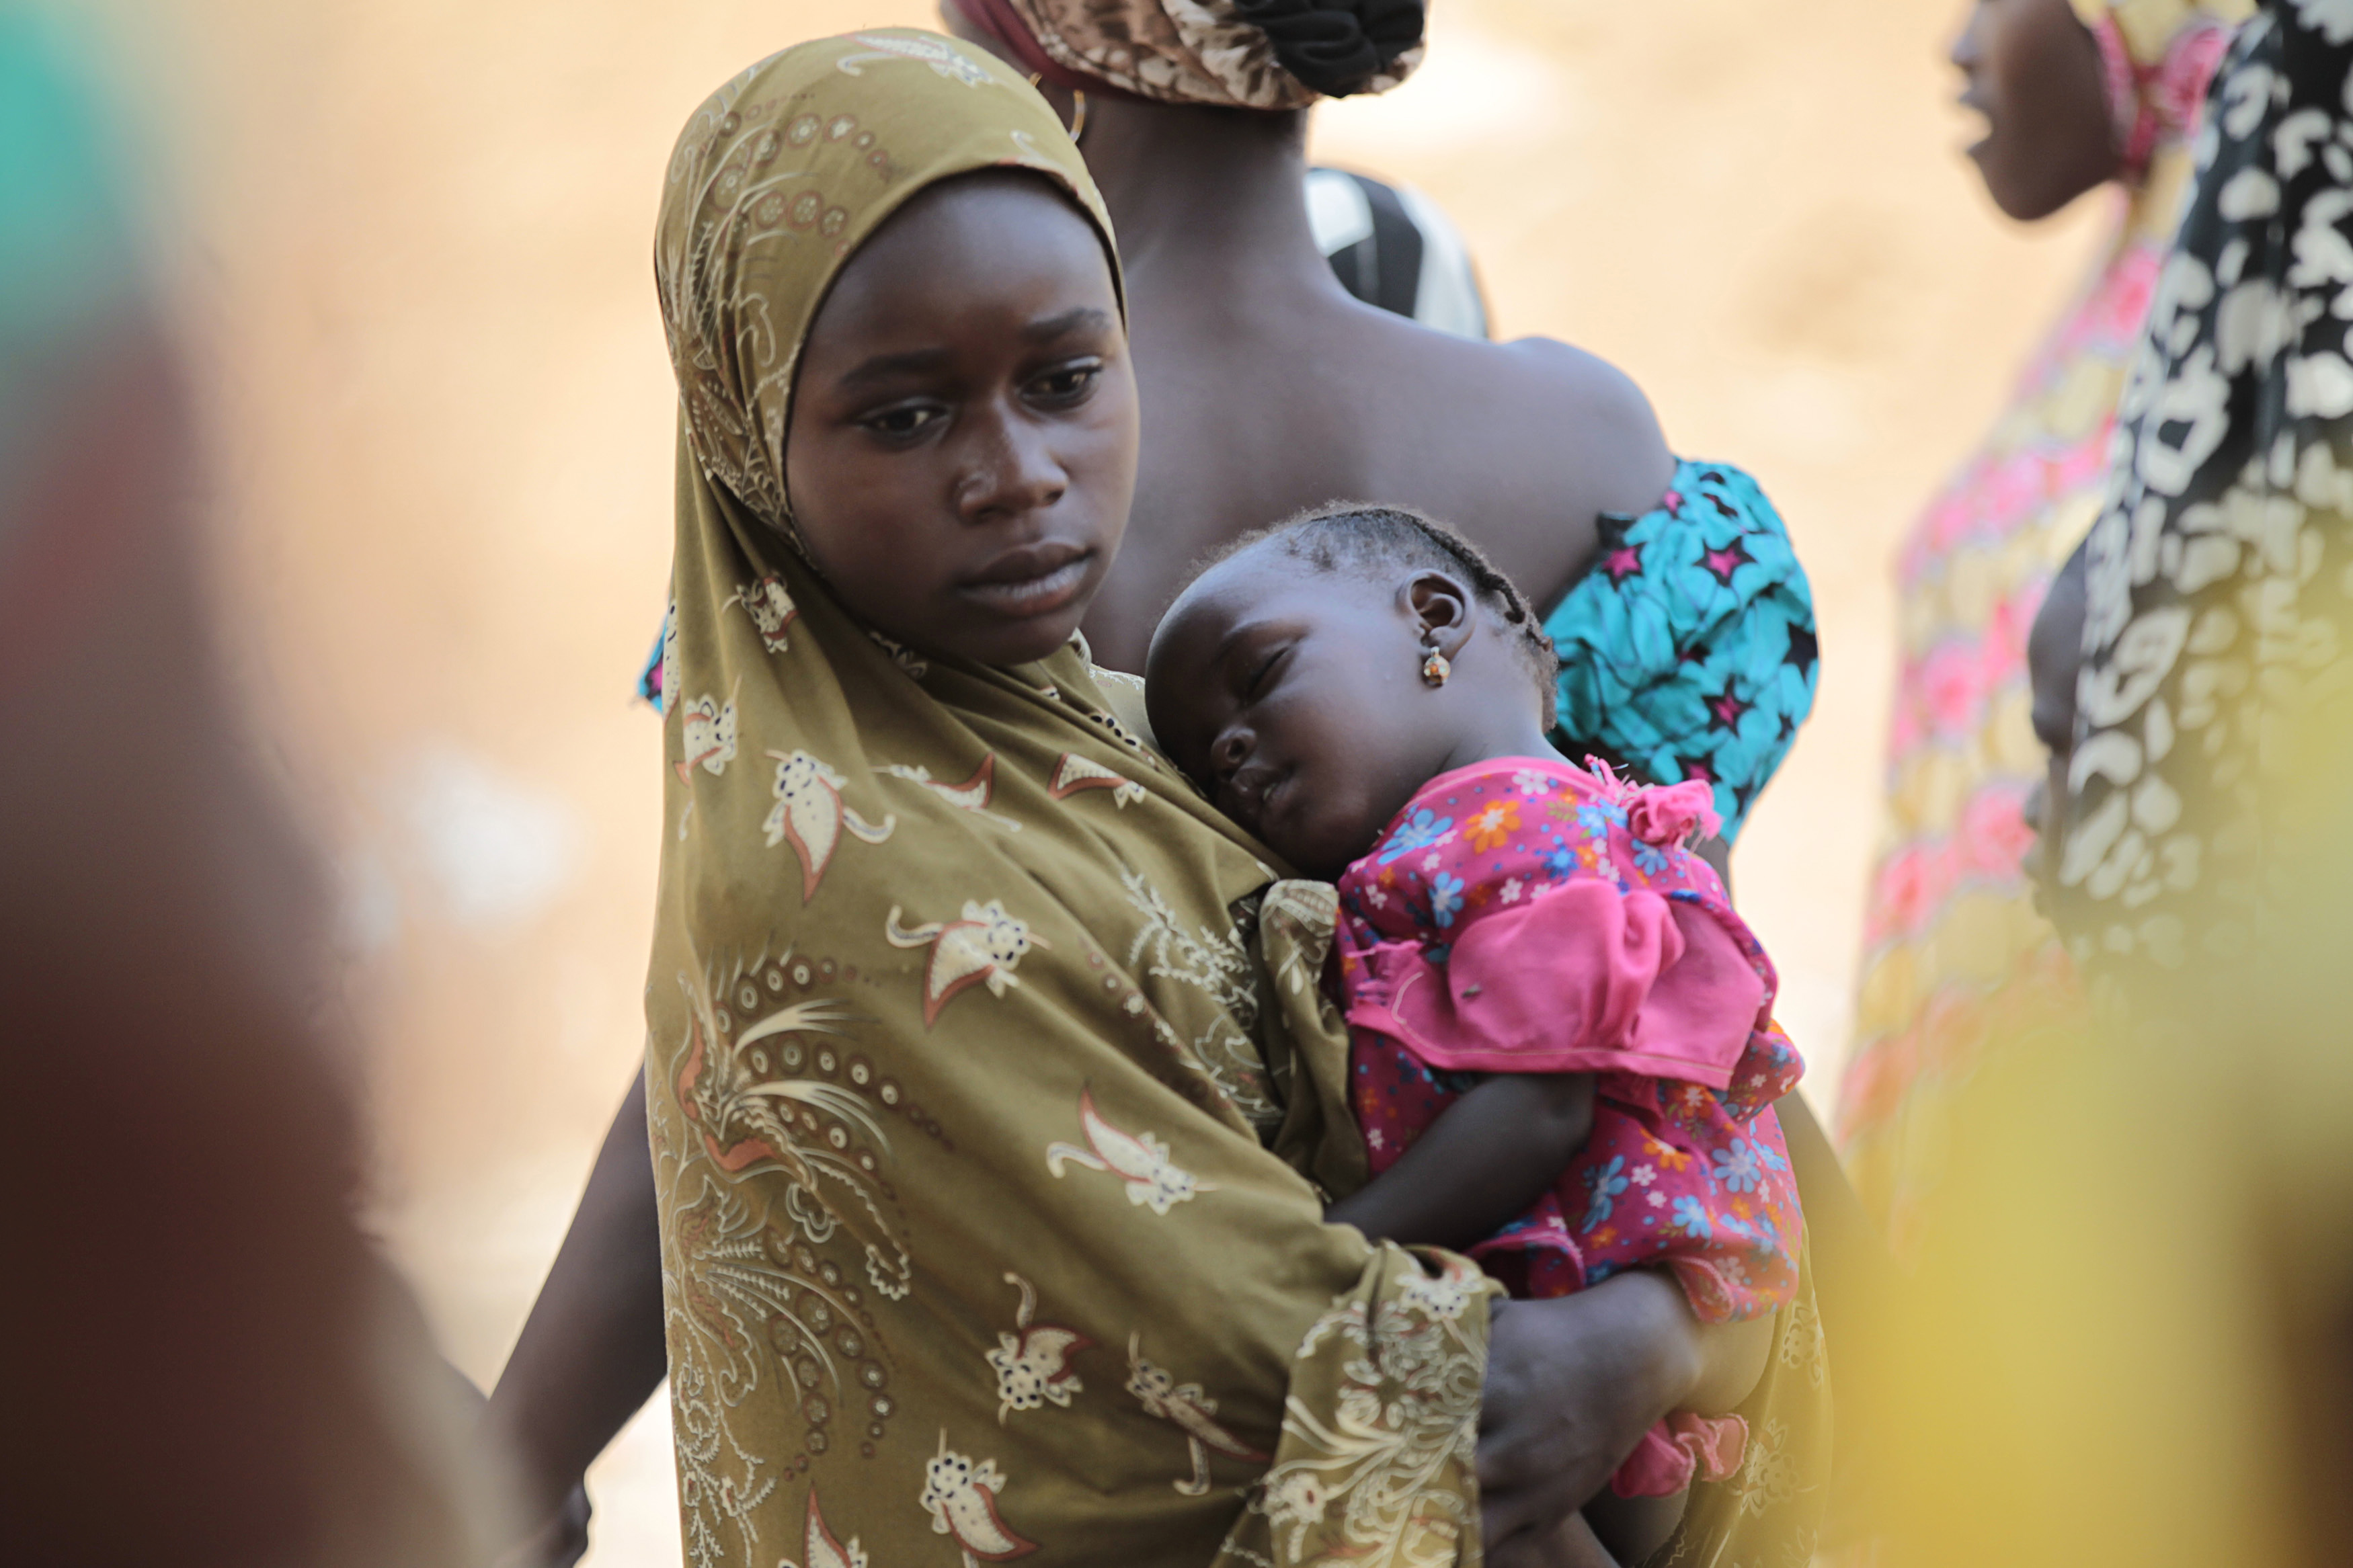 A girl carries a sleeping baby at a camp for displaced people fleeing violence from Gulak, a border town in the north of Adamawa state which was attacked in September 2014, January 31, 2015. REUTERS/Afolabi Sotunde (NIGERIA - Tags: CIVIL UNREST POLITICS) - GM1EB210WIL01